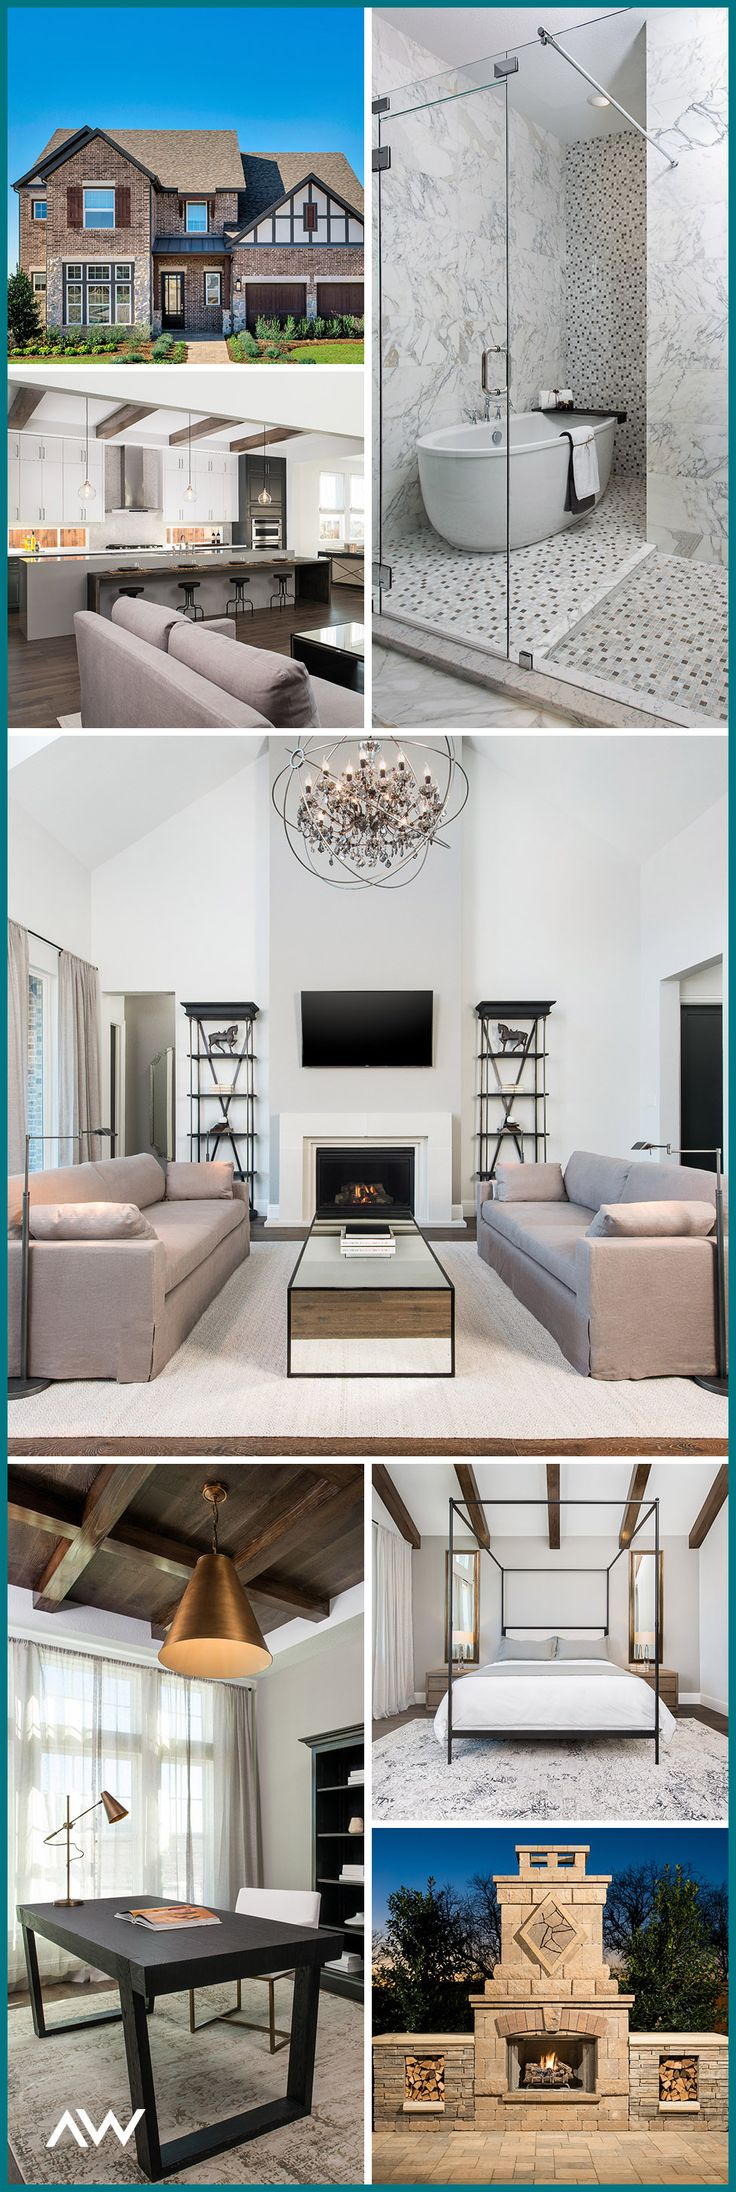 dallas is an amazing place to call home find inspiration to create your new home in one of americas top cities to live in design your home to fit your